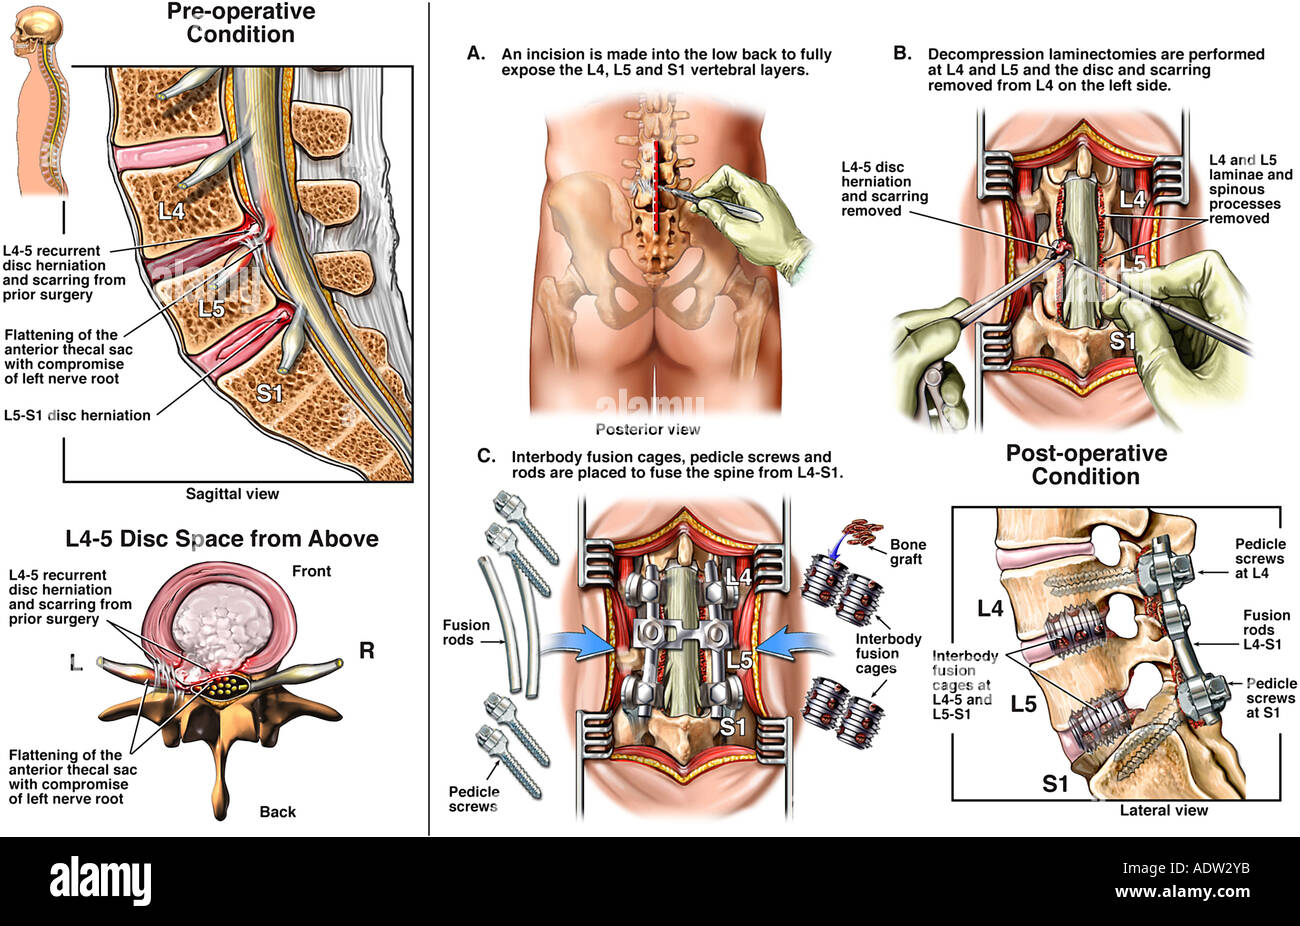 List Of Synonyms And Antonyms Of The Word L4 Pedicle